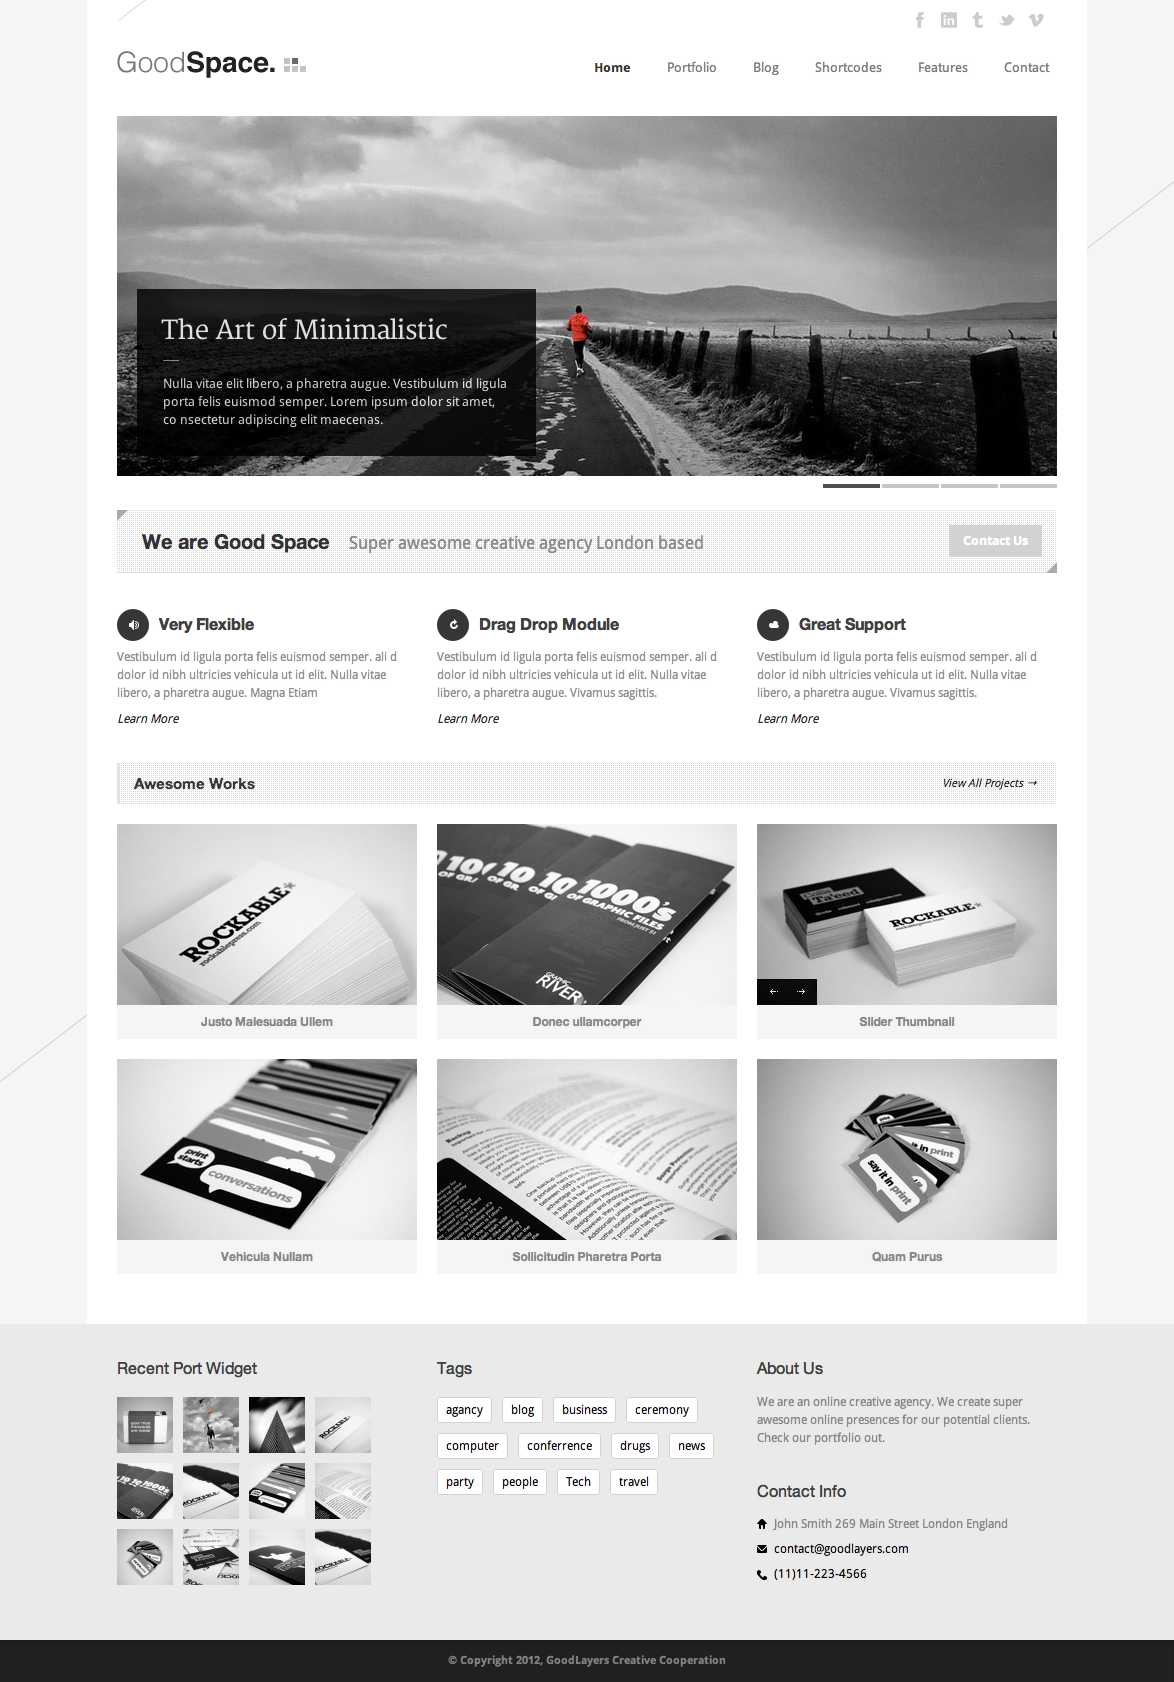 Good Space - Responsive Minimal WP Theme  - index page with color changed